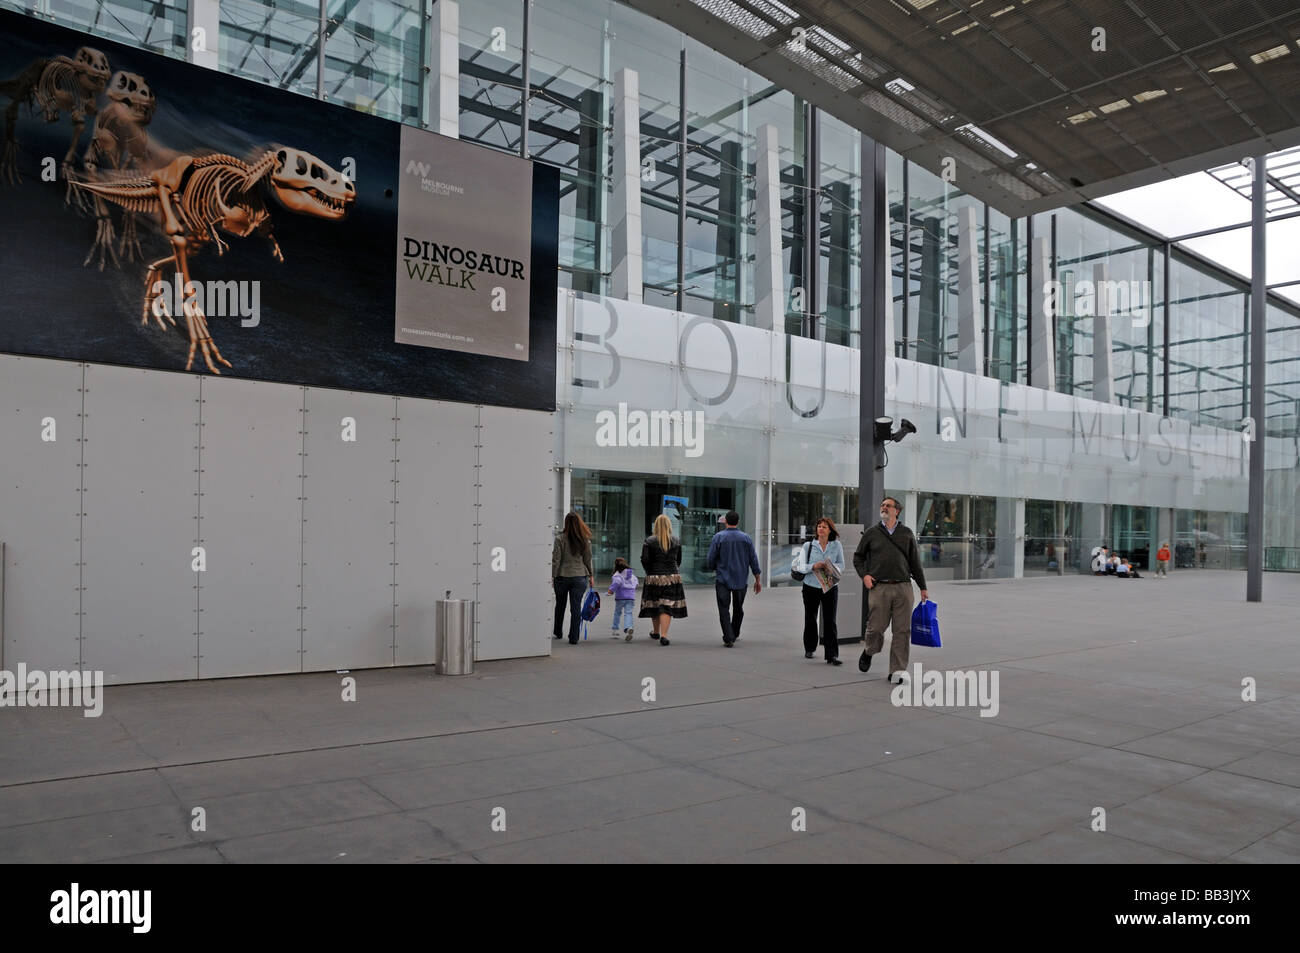 Exterior main entrance to Melbourne Museum Australia This is a modern building with an exhibition of dinosaurs - Stock Image